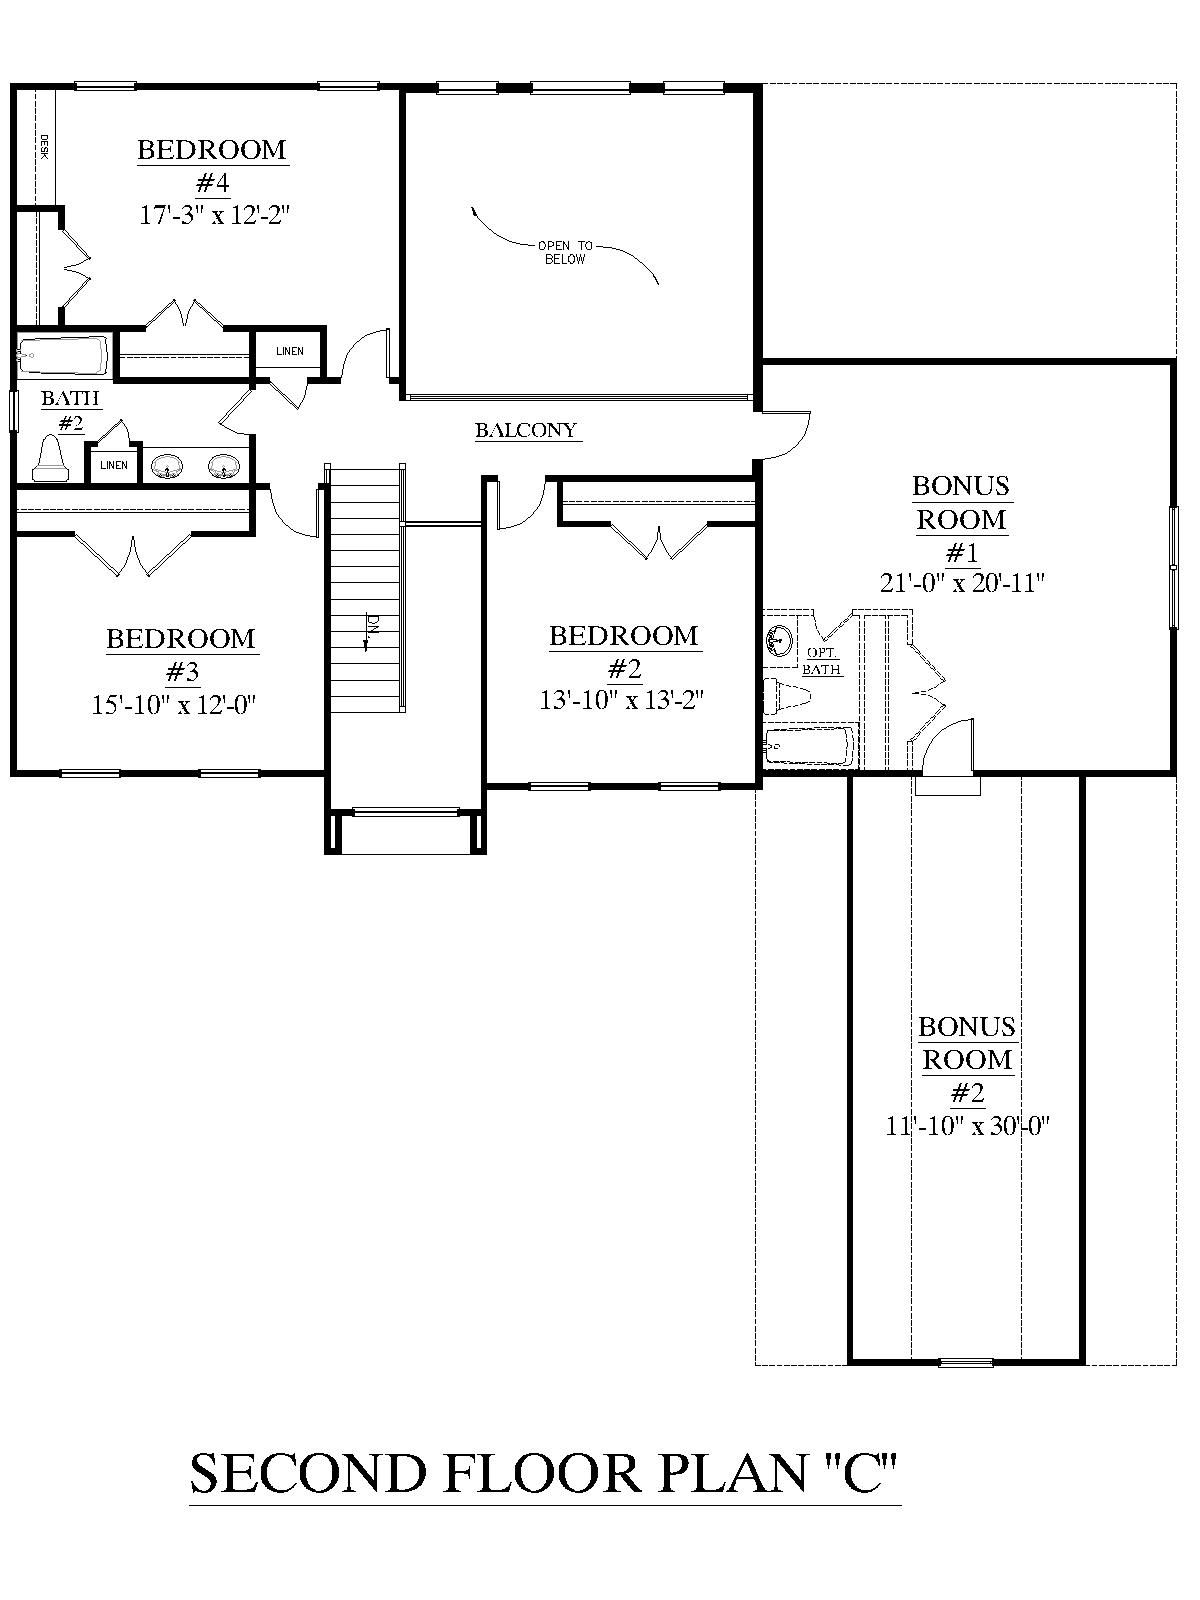 House plan 2995 c springdale c second floor plan for 2 story house plans master bedroom downstairs